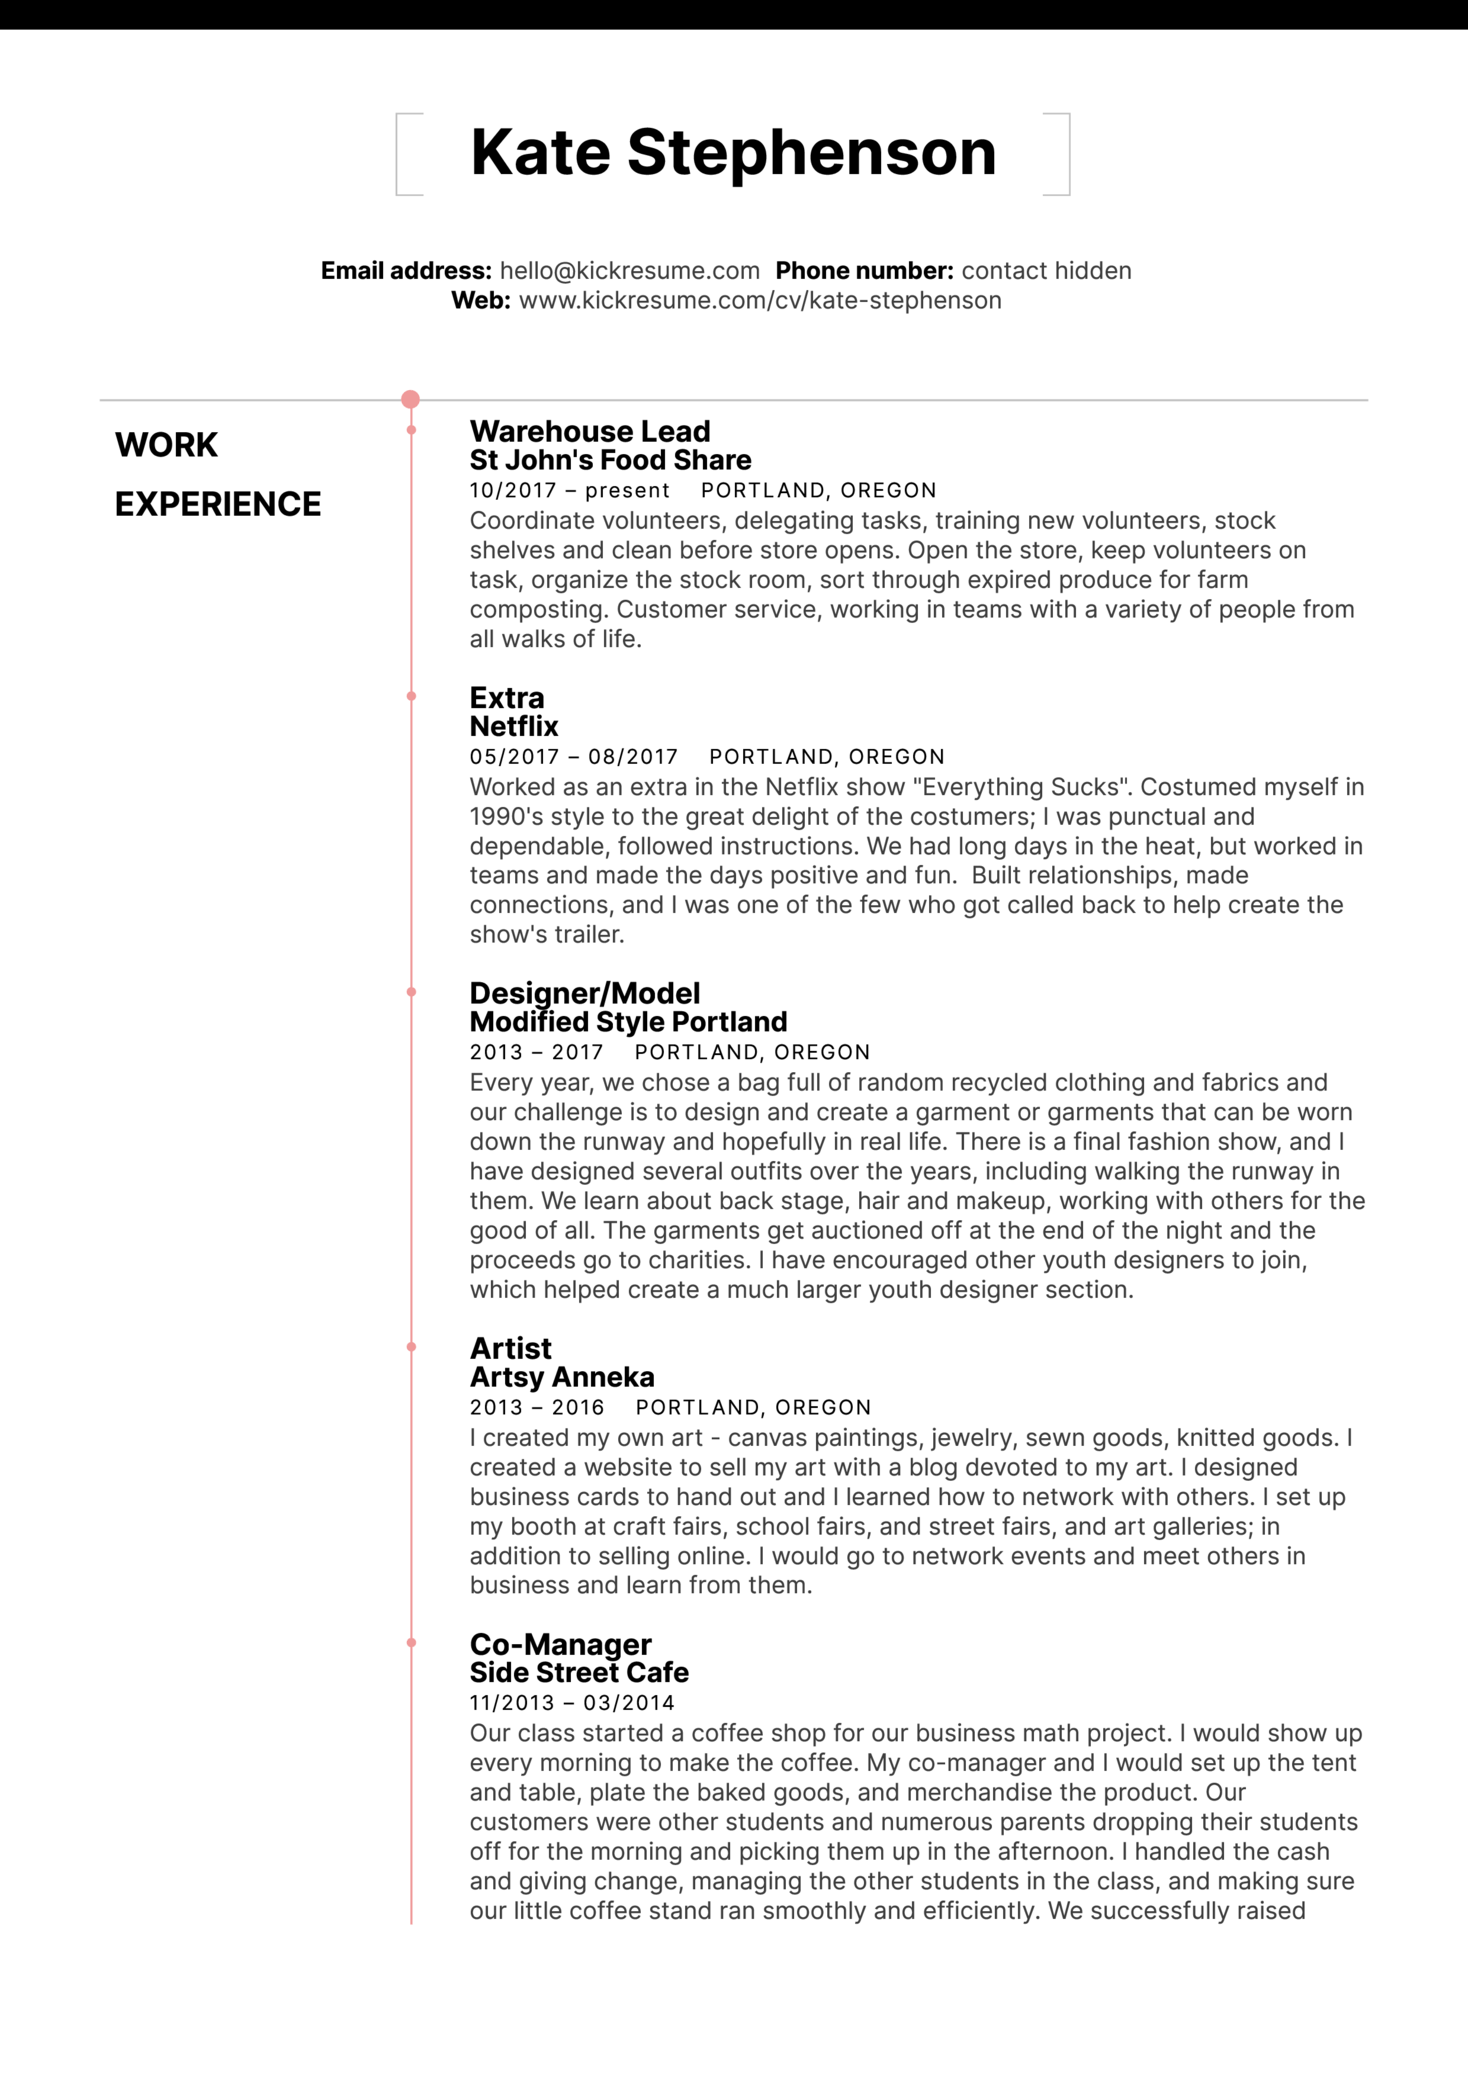 Starbucks barista resume sample | Resume samples | Career help center